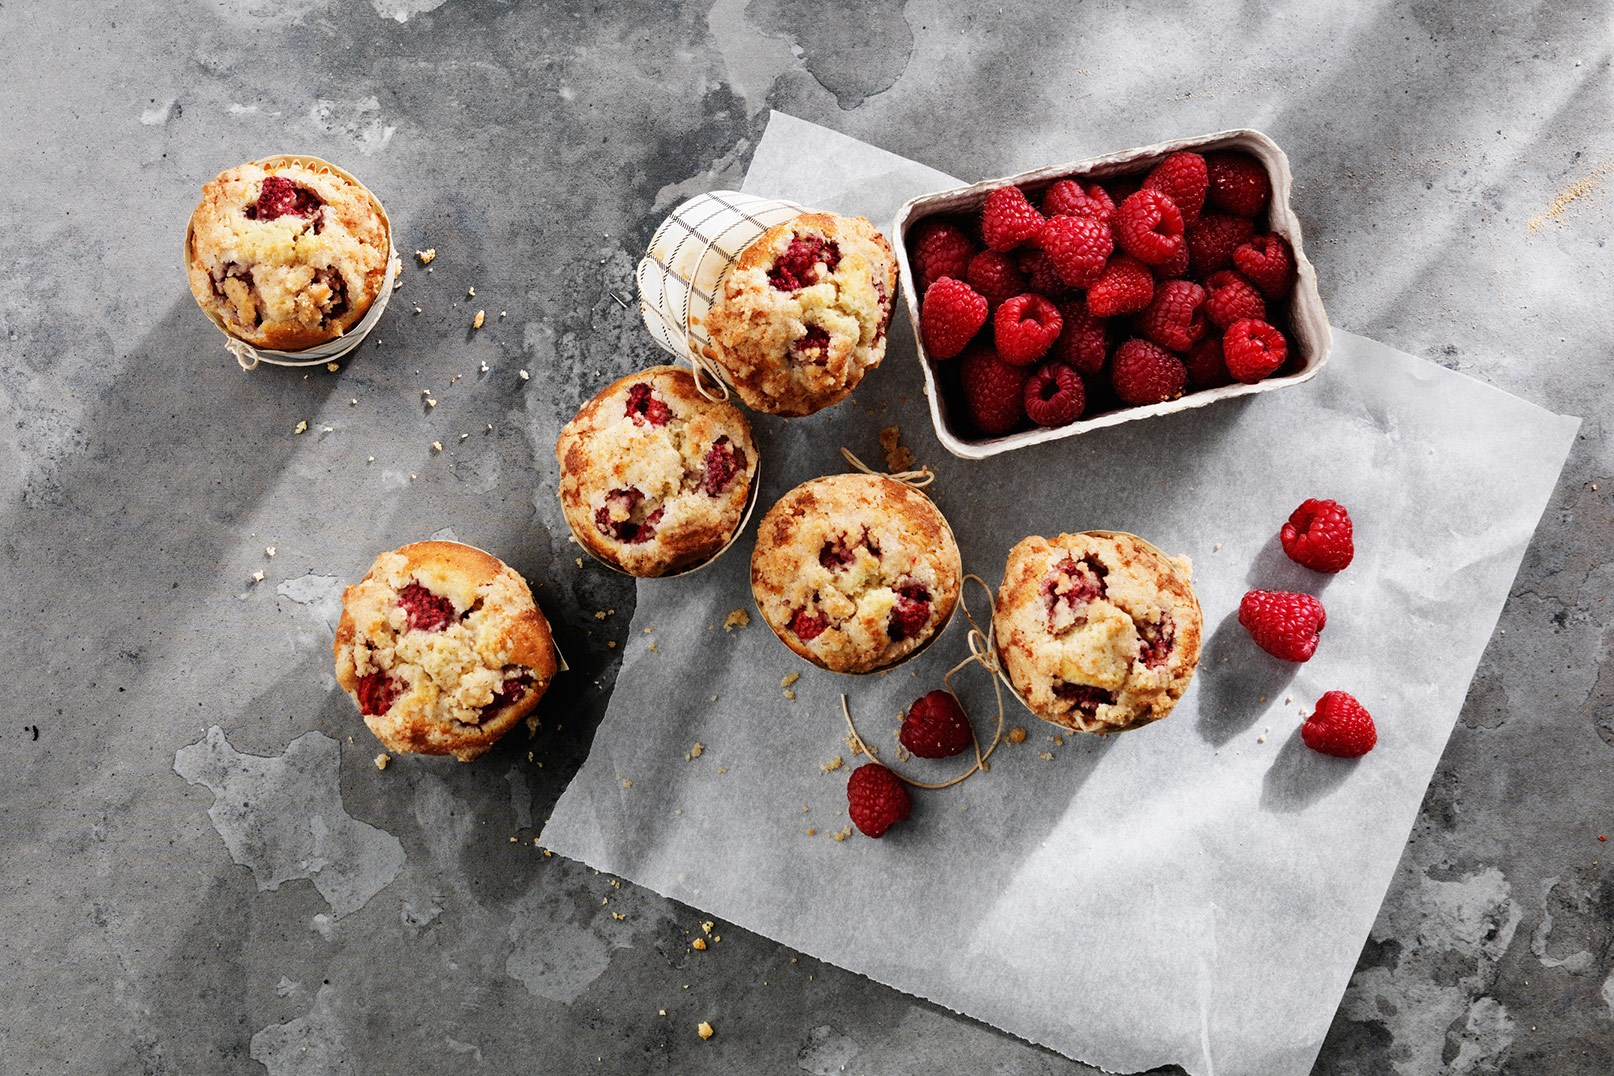 Cardamom Muffins with Raspberries, Custard & Crumble Topping